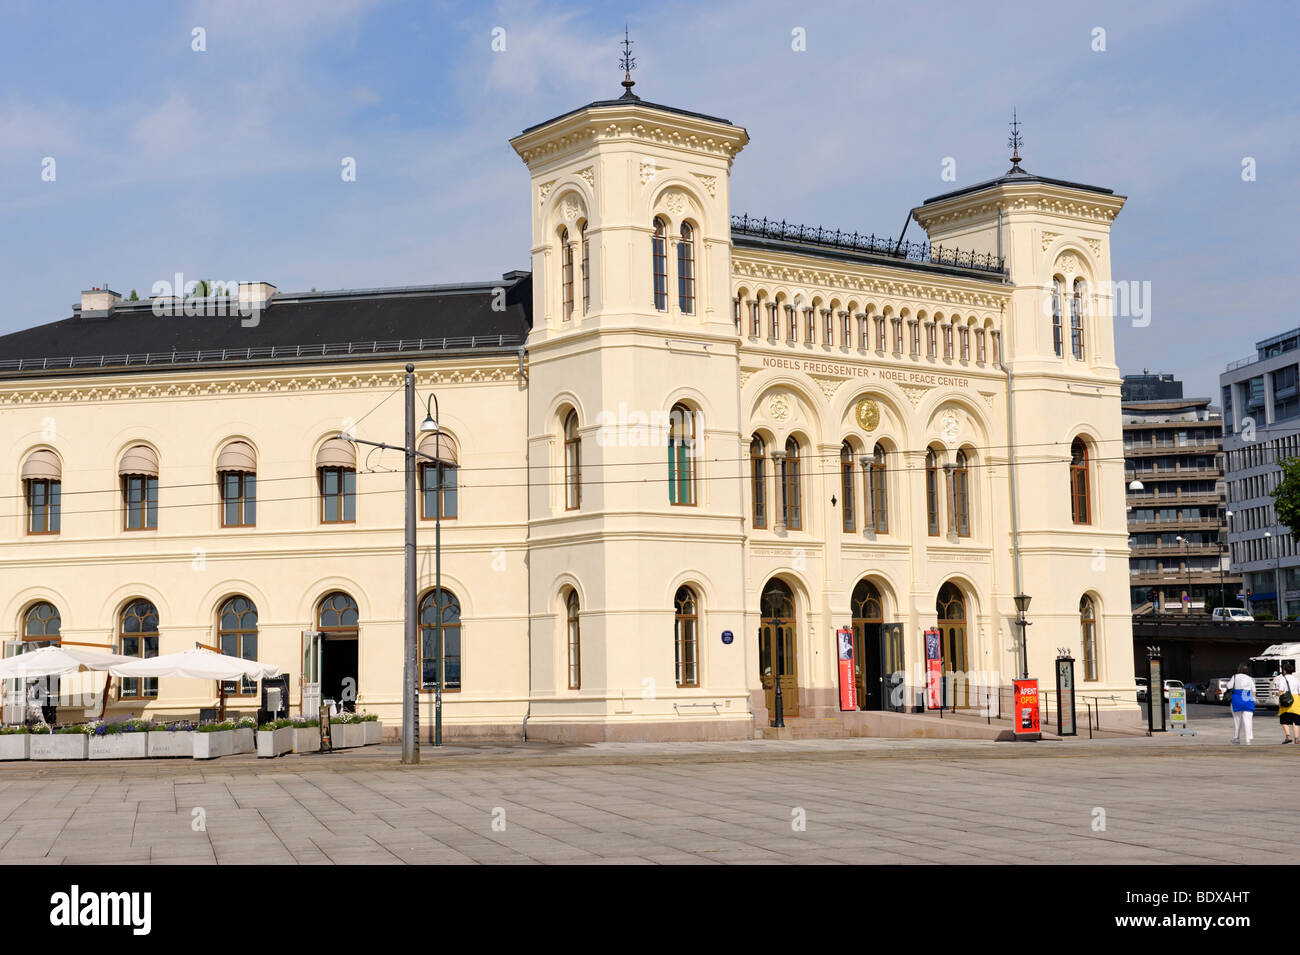 Nobel Peace Center, Radhusbrygge, Oslo, Norway, Scandinavia, Europe - Stock Image